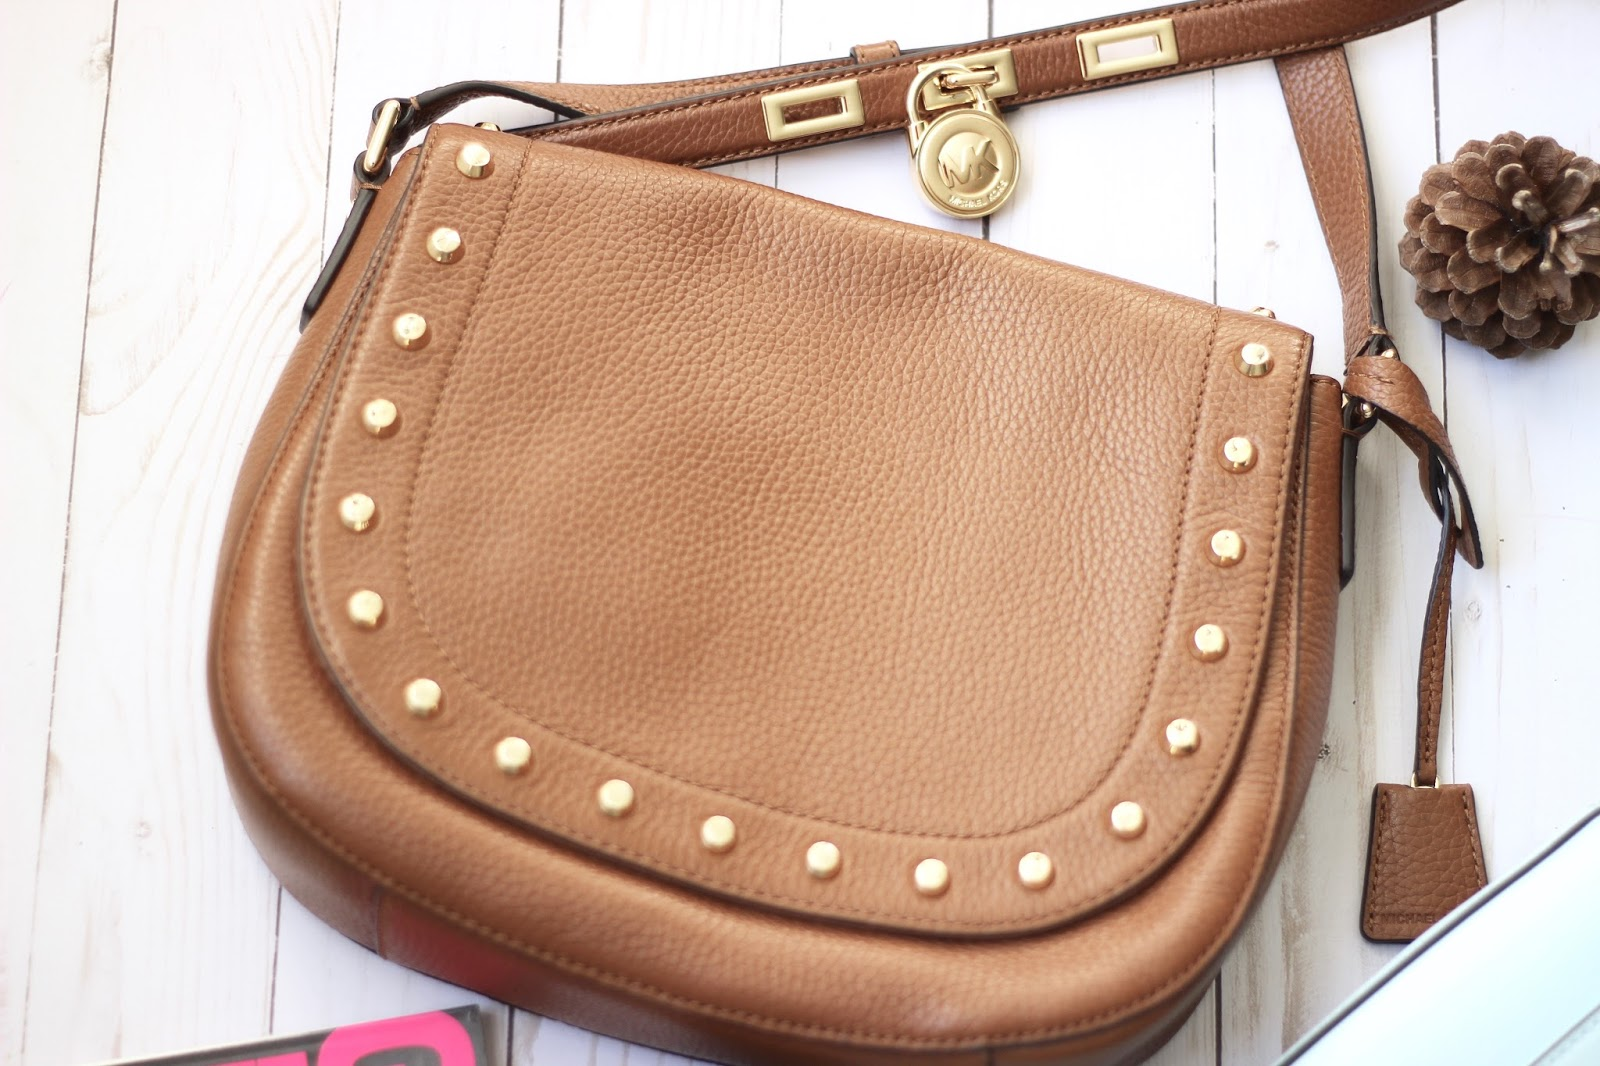 Michael Kors Studded Saddle Bag Review